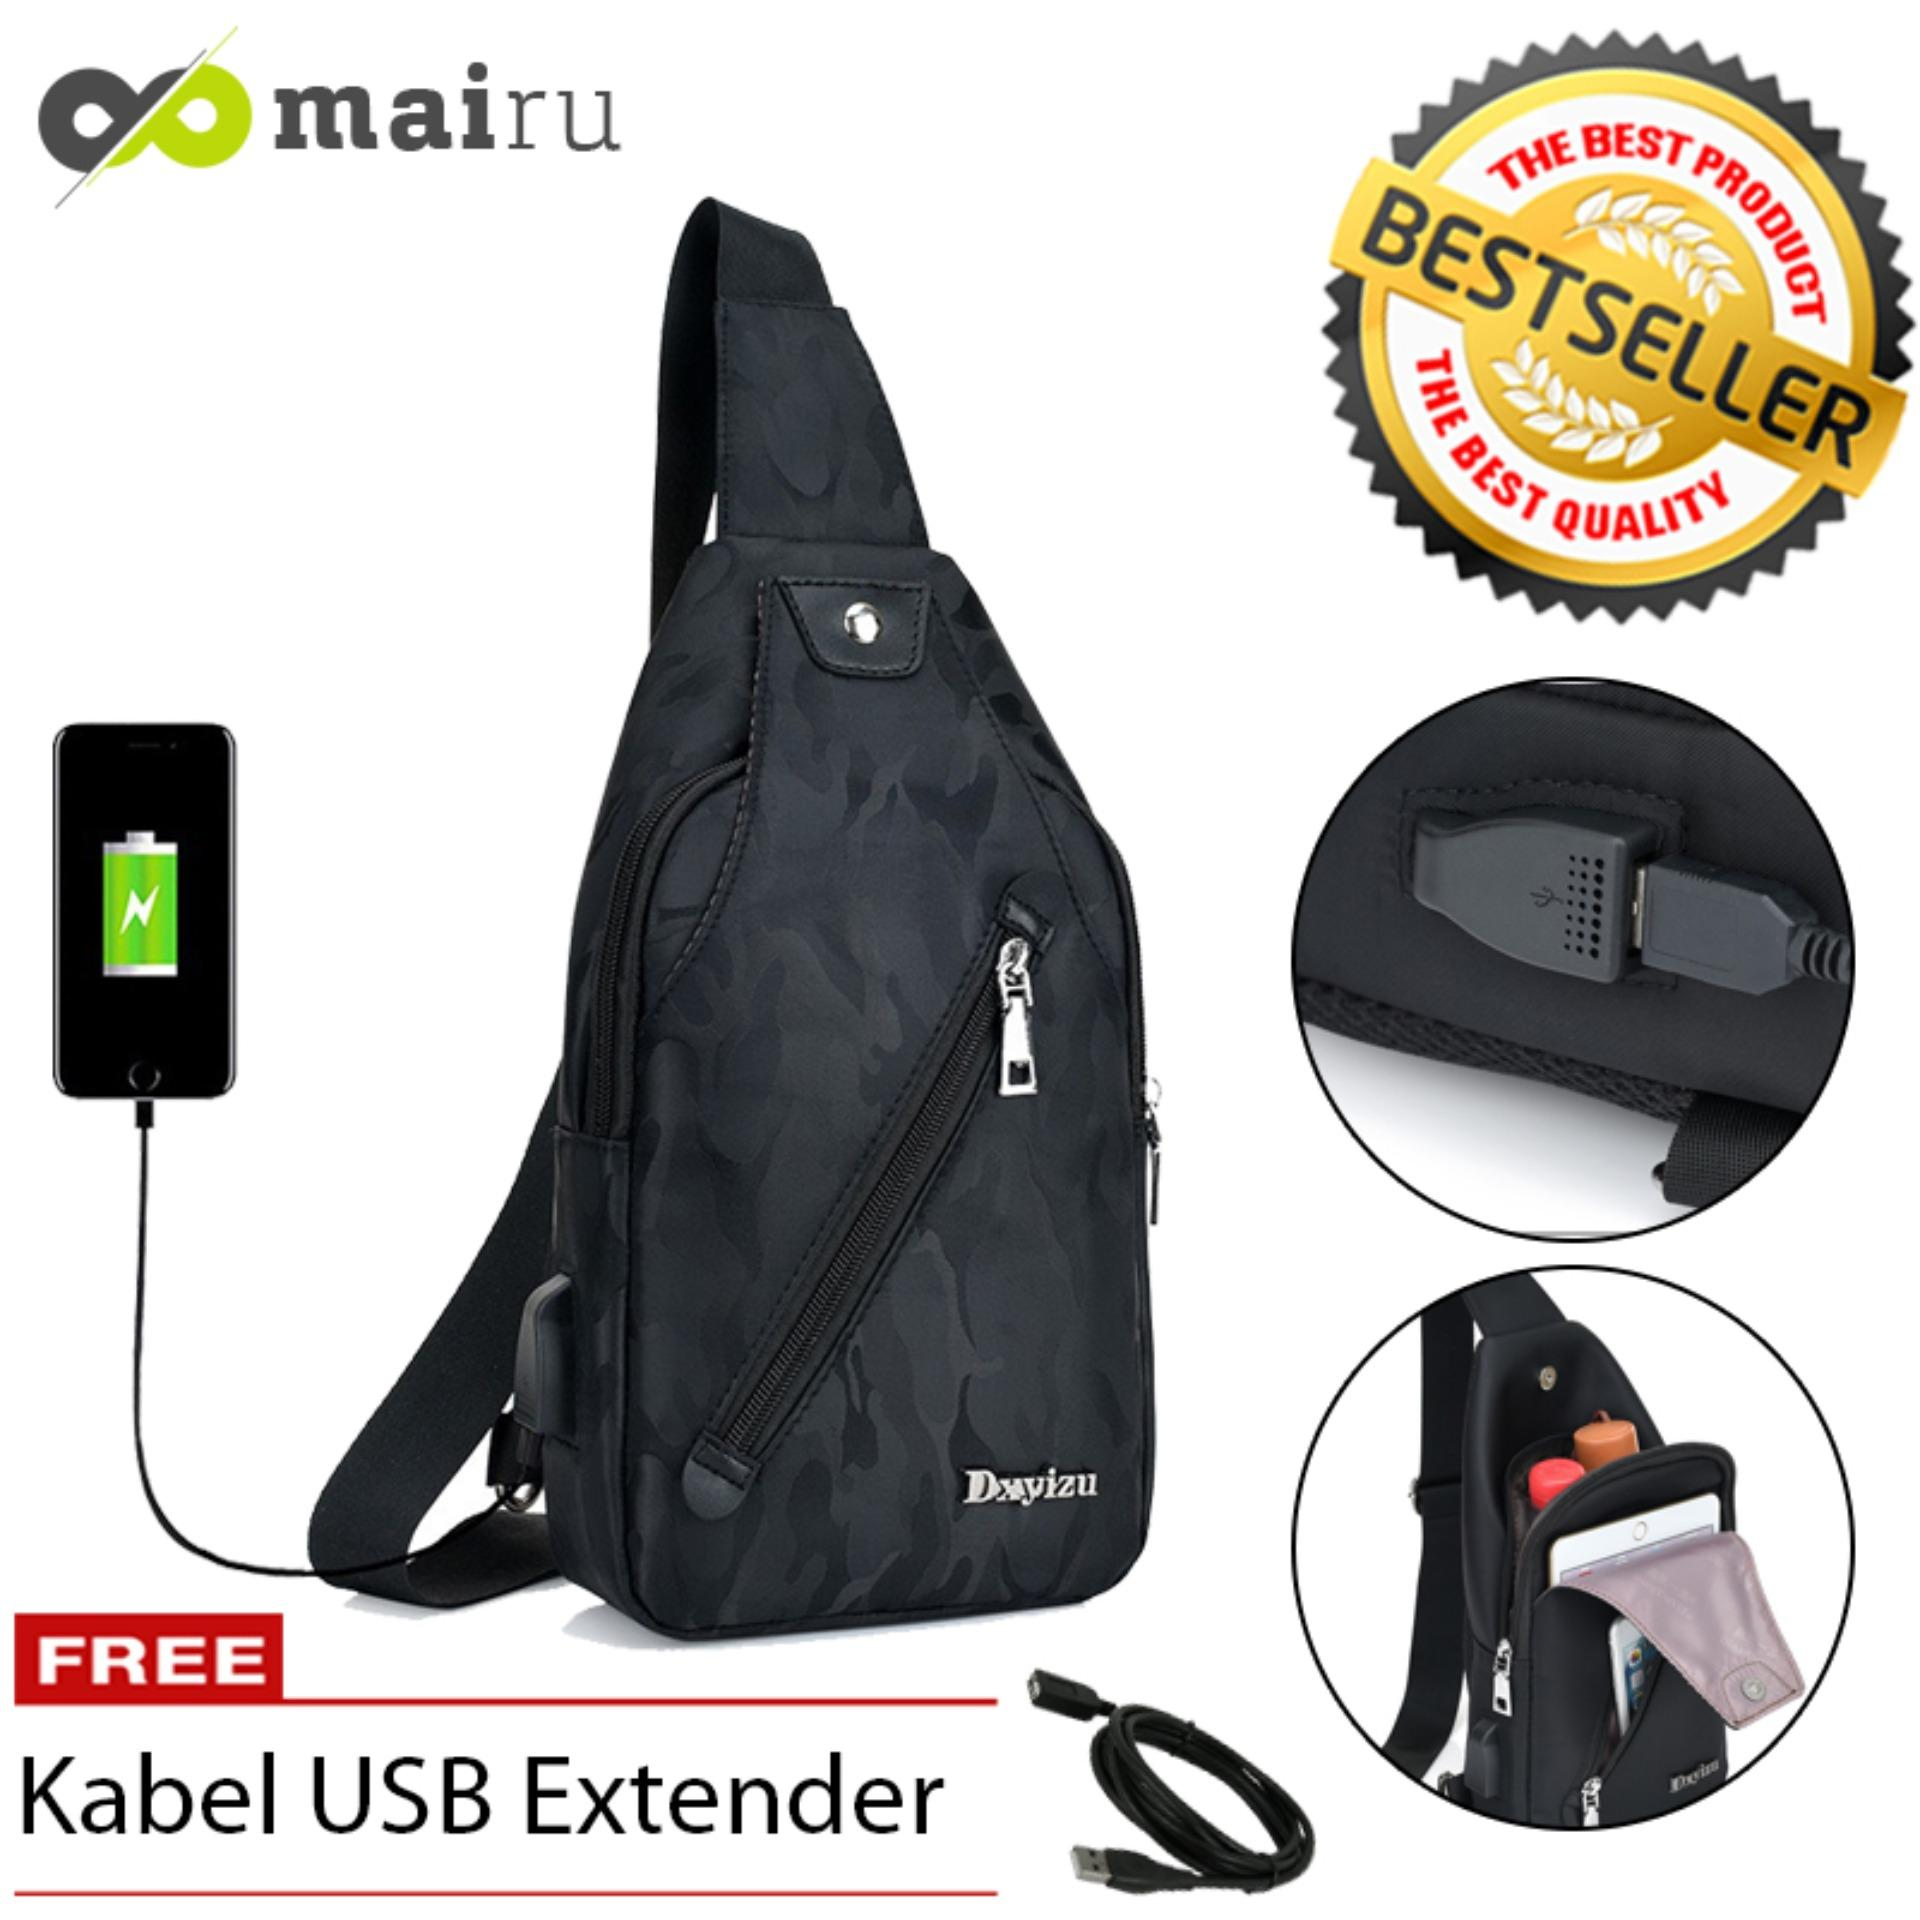 Diskon Produk Mairu Dxyizu 533 Tas Selempang Pria Sling Bag Cross Body With Usb Charger Support For Iphone Ipad Mini Xiaomi Samsung Tab Tablet 8 Anti Theft